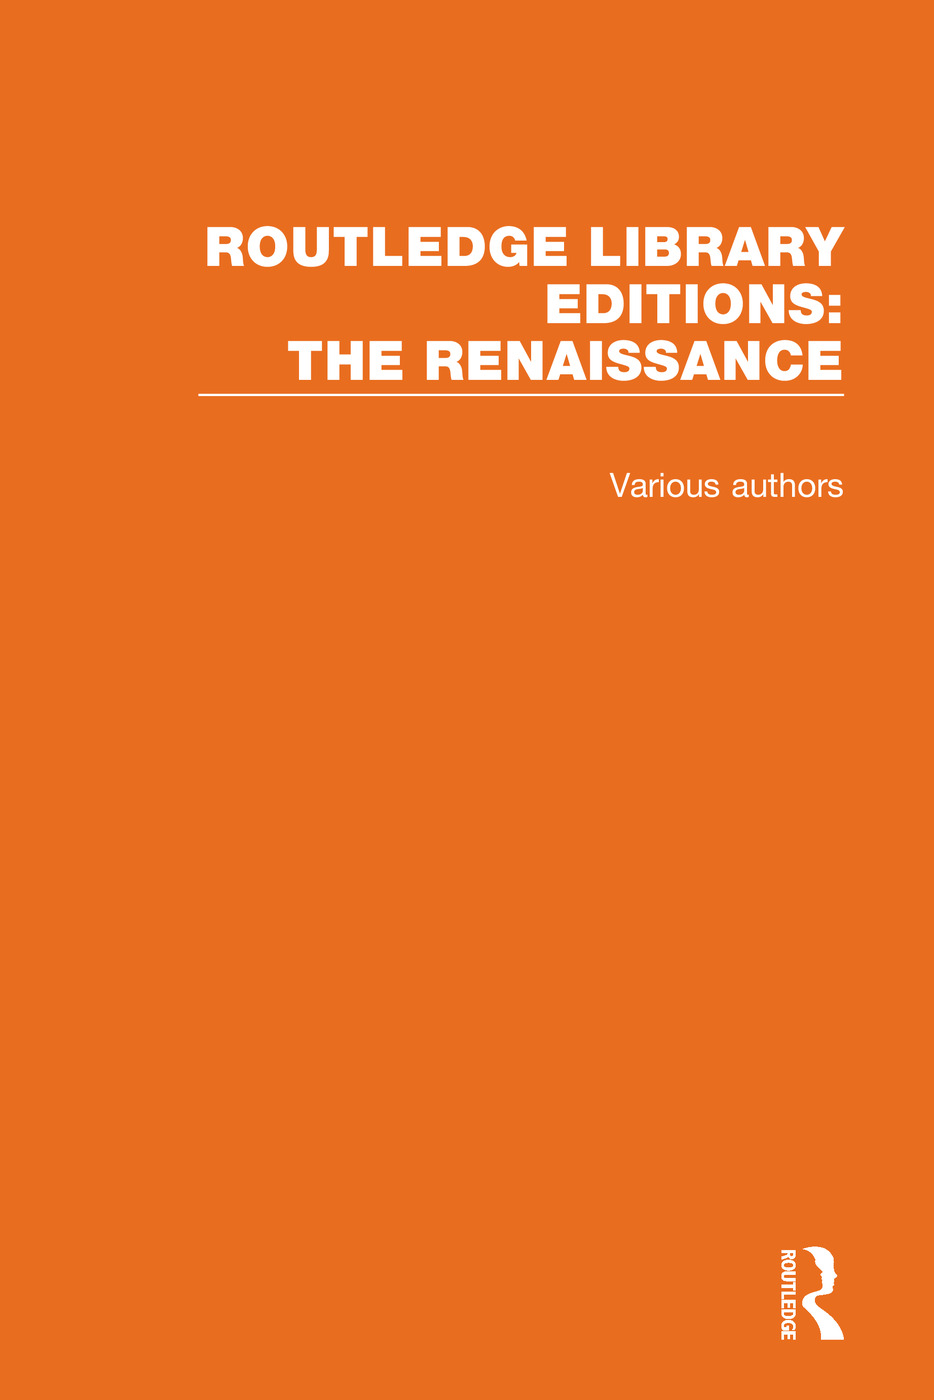 Routledge Library Editions: The Renaissance book cover